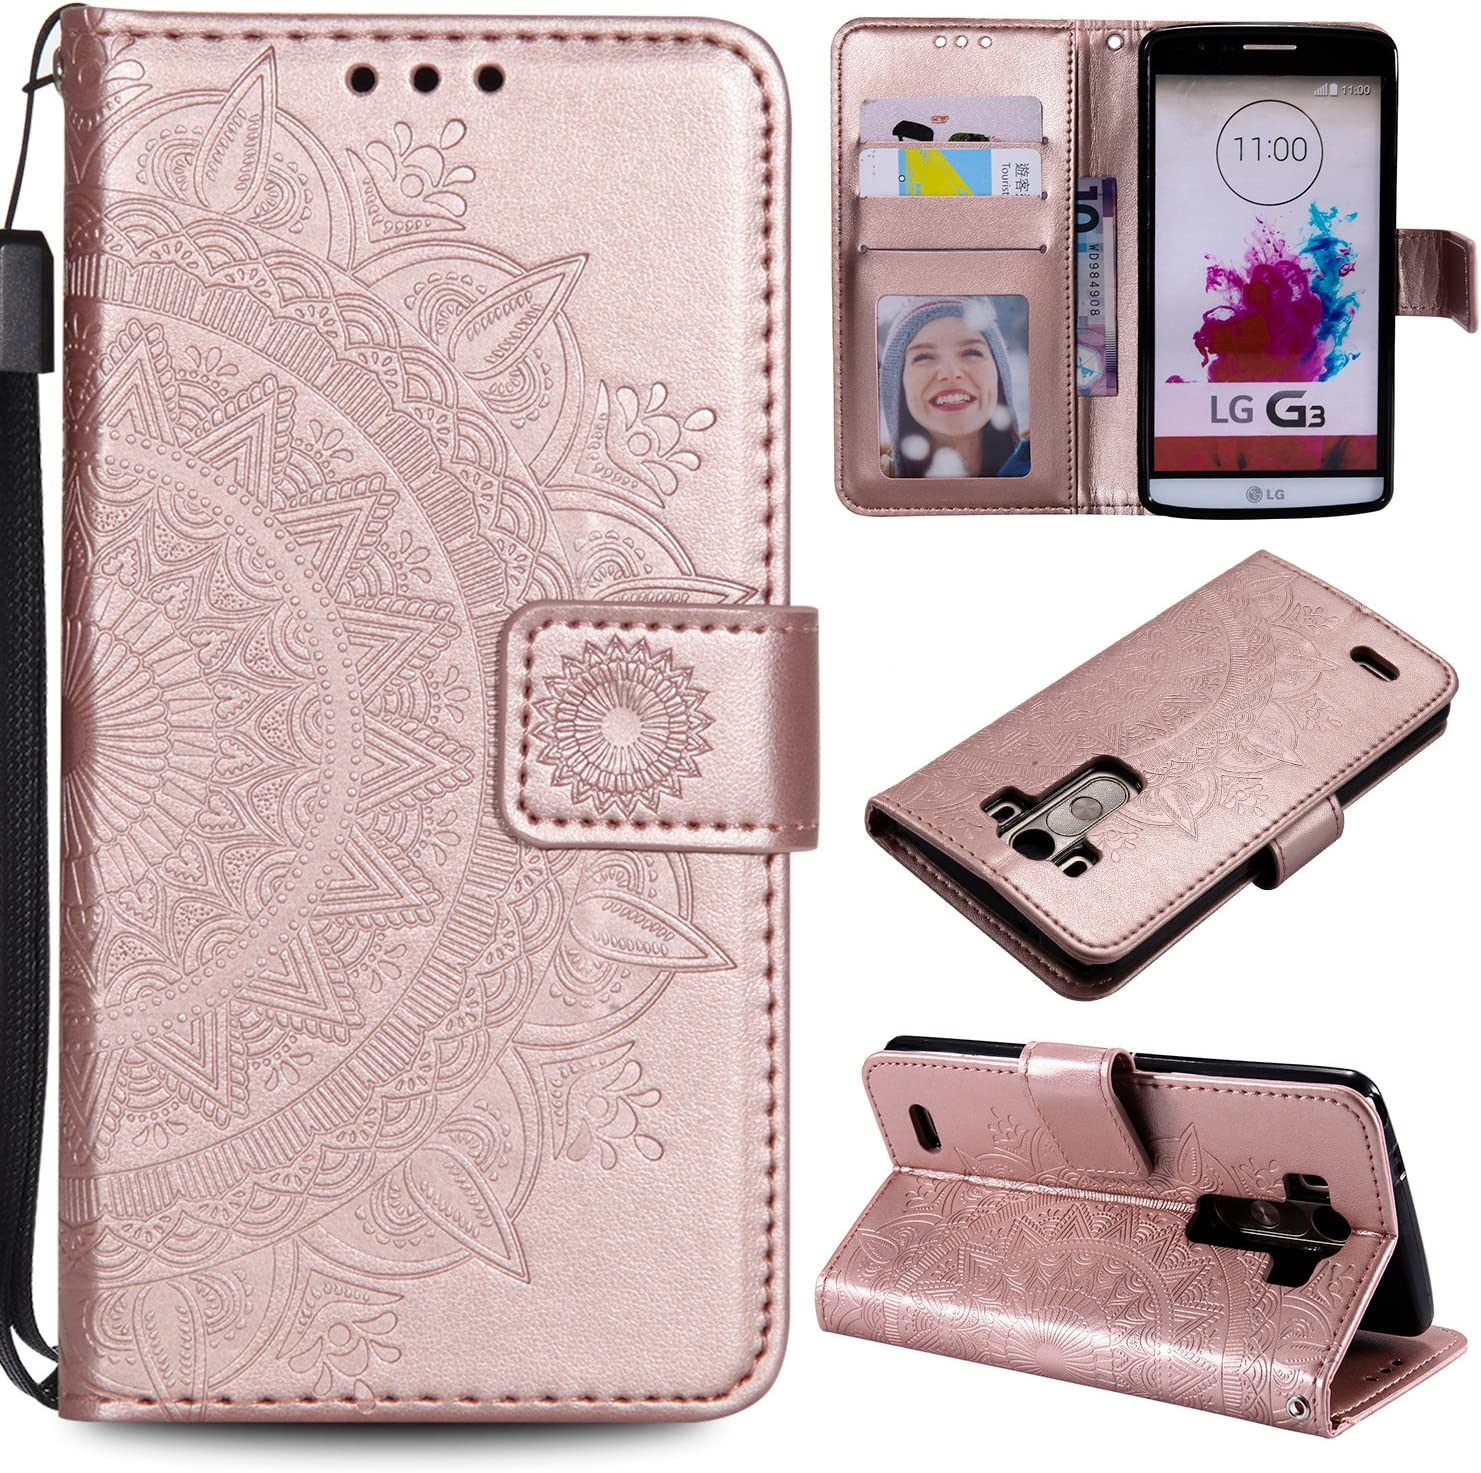 NEXCURIO [Embossed Flower] LG G3 Wallet Case with Card Holder Folding Kickstand Leather Case Flip Cover for LG G3 - NEHHA11000 Rose Gold